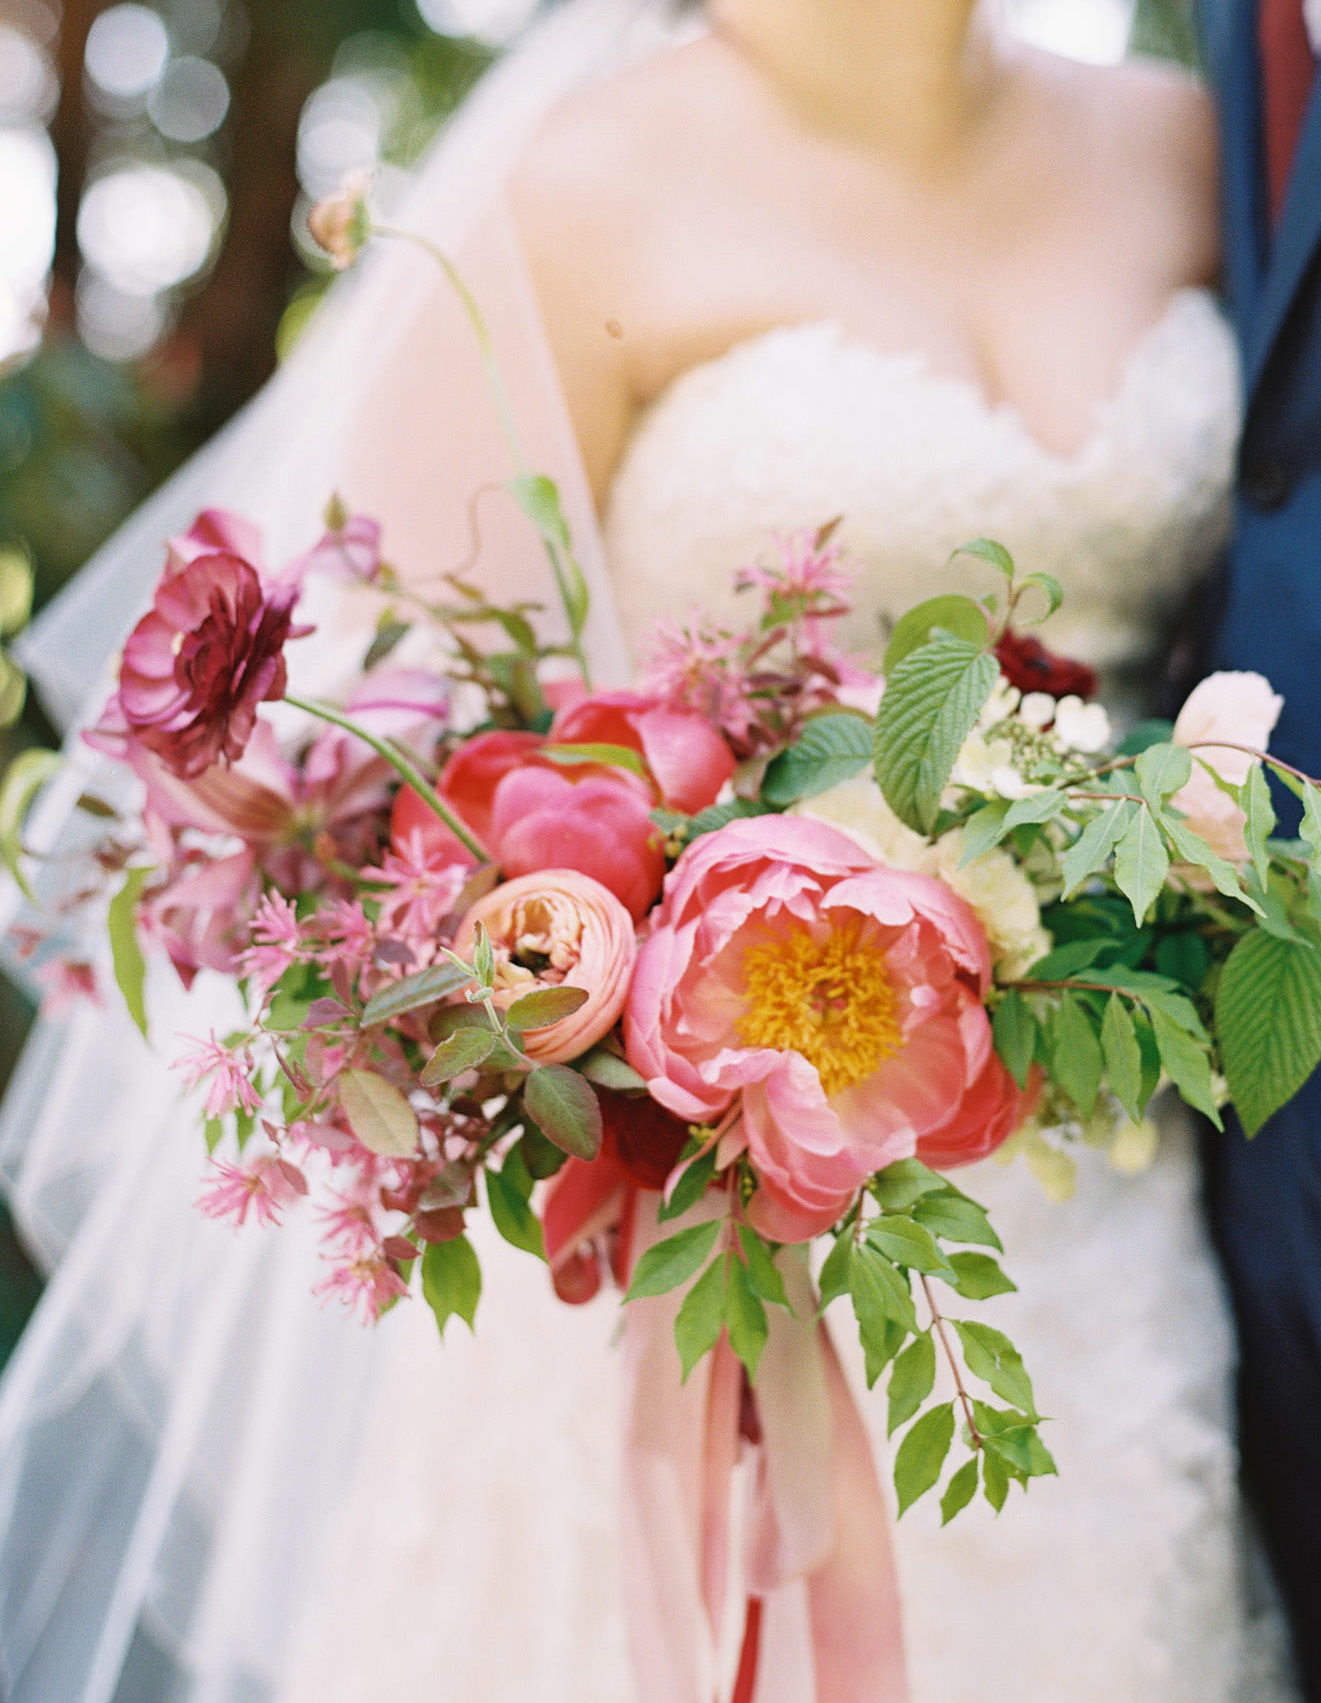 Vibrant spring wedding flowers